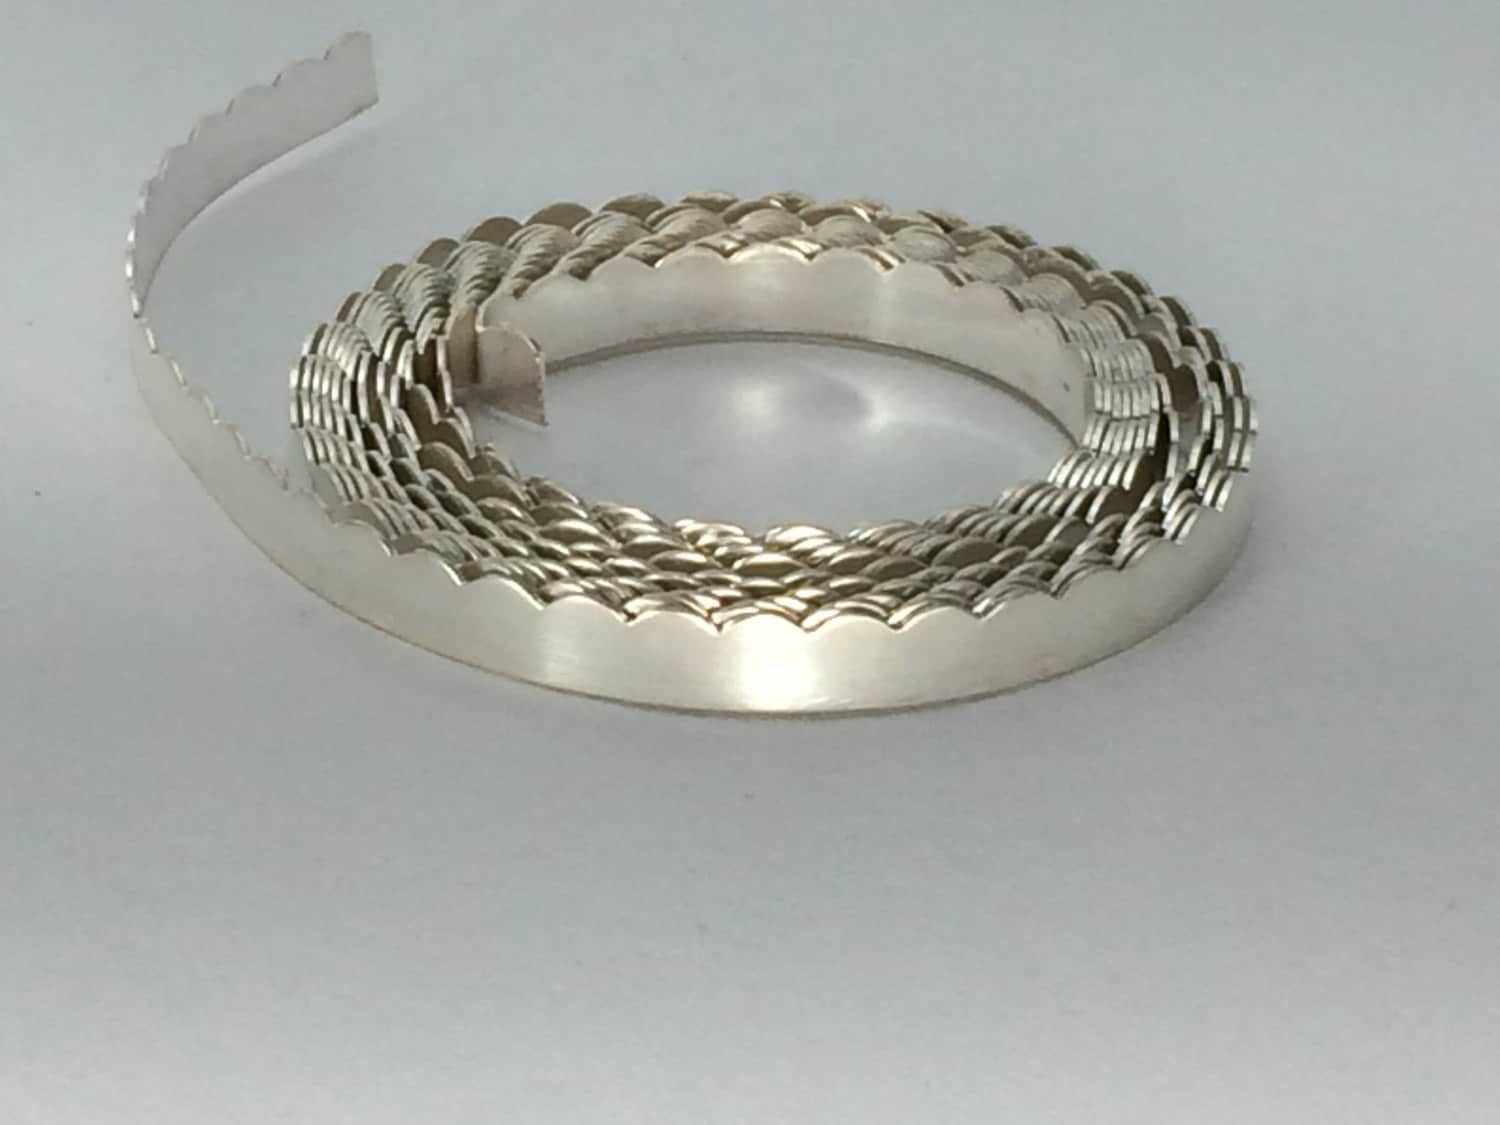 1 ozt- 26g, .999 silver scalloped bezel wire, gallery wire, stone ...